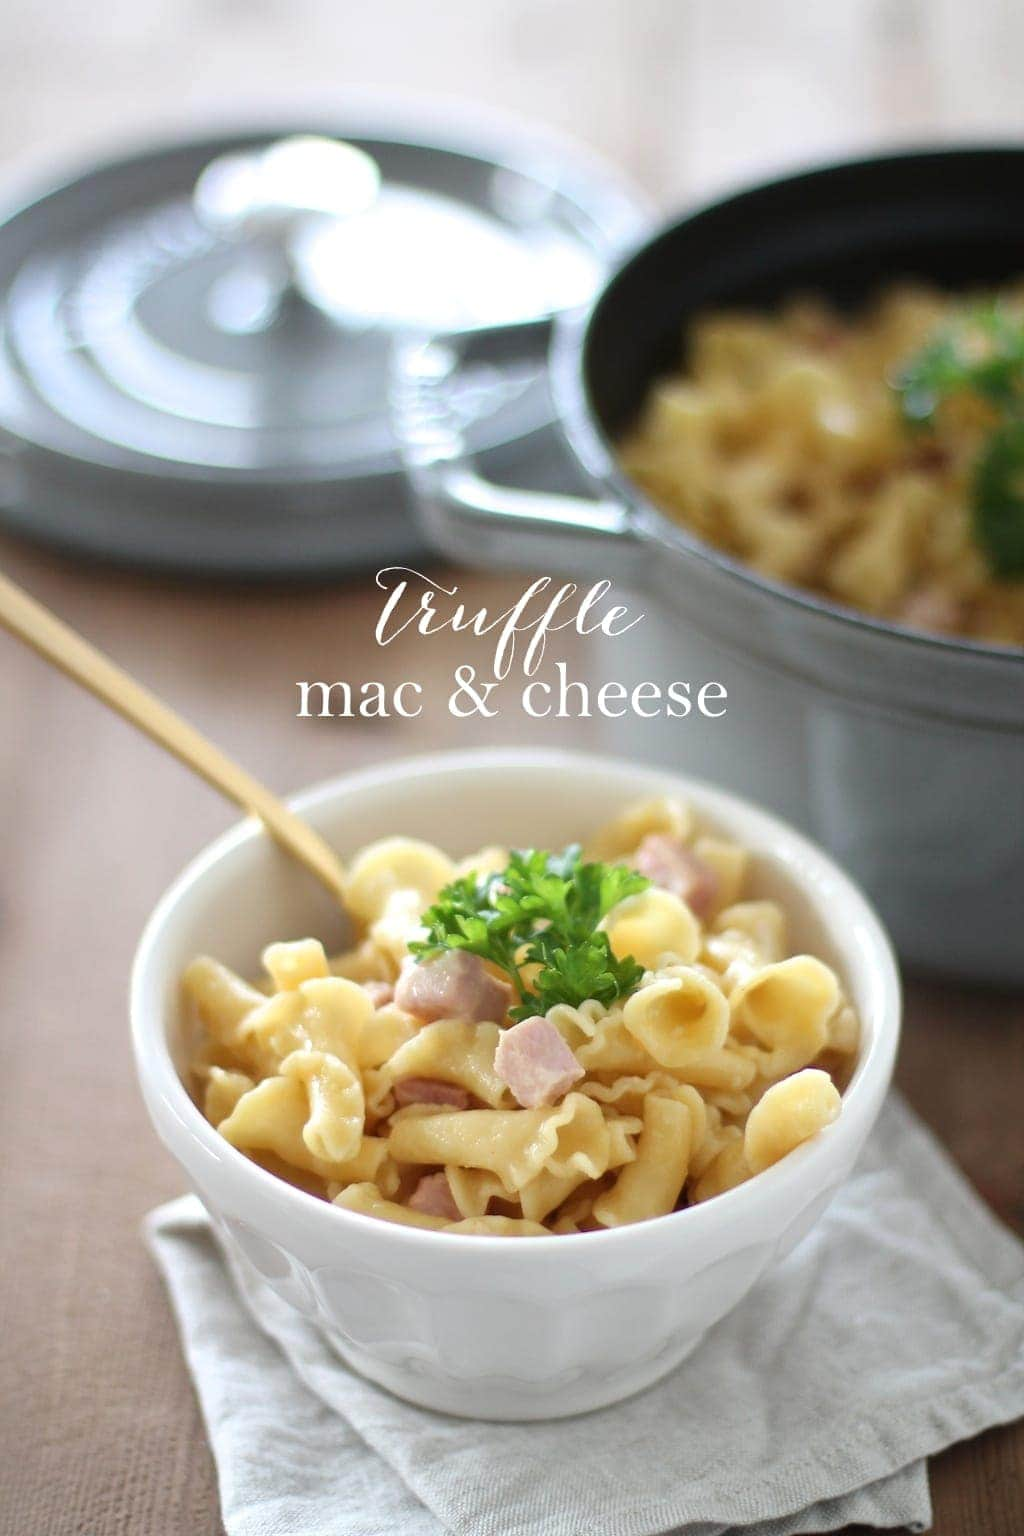 The Best Mac & Cheese recipe - Truffle Mac & Cheese that you can make ahead. An excellent side dish or entree!